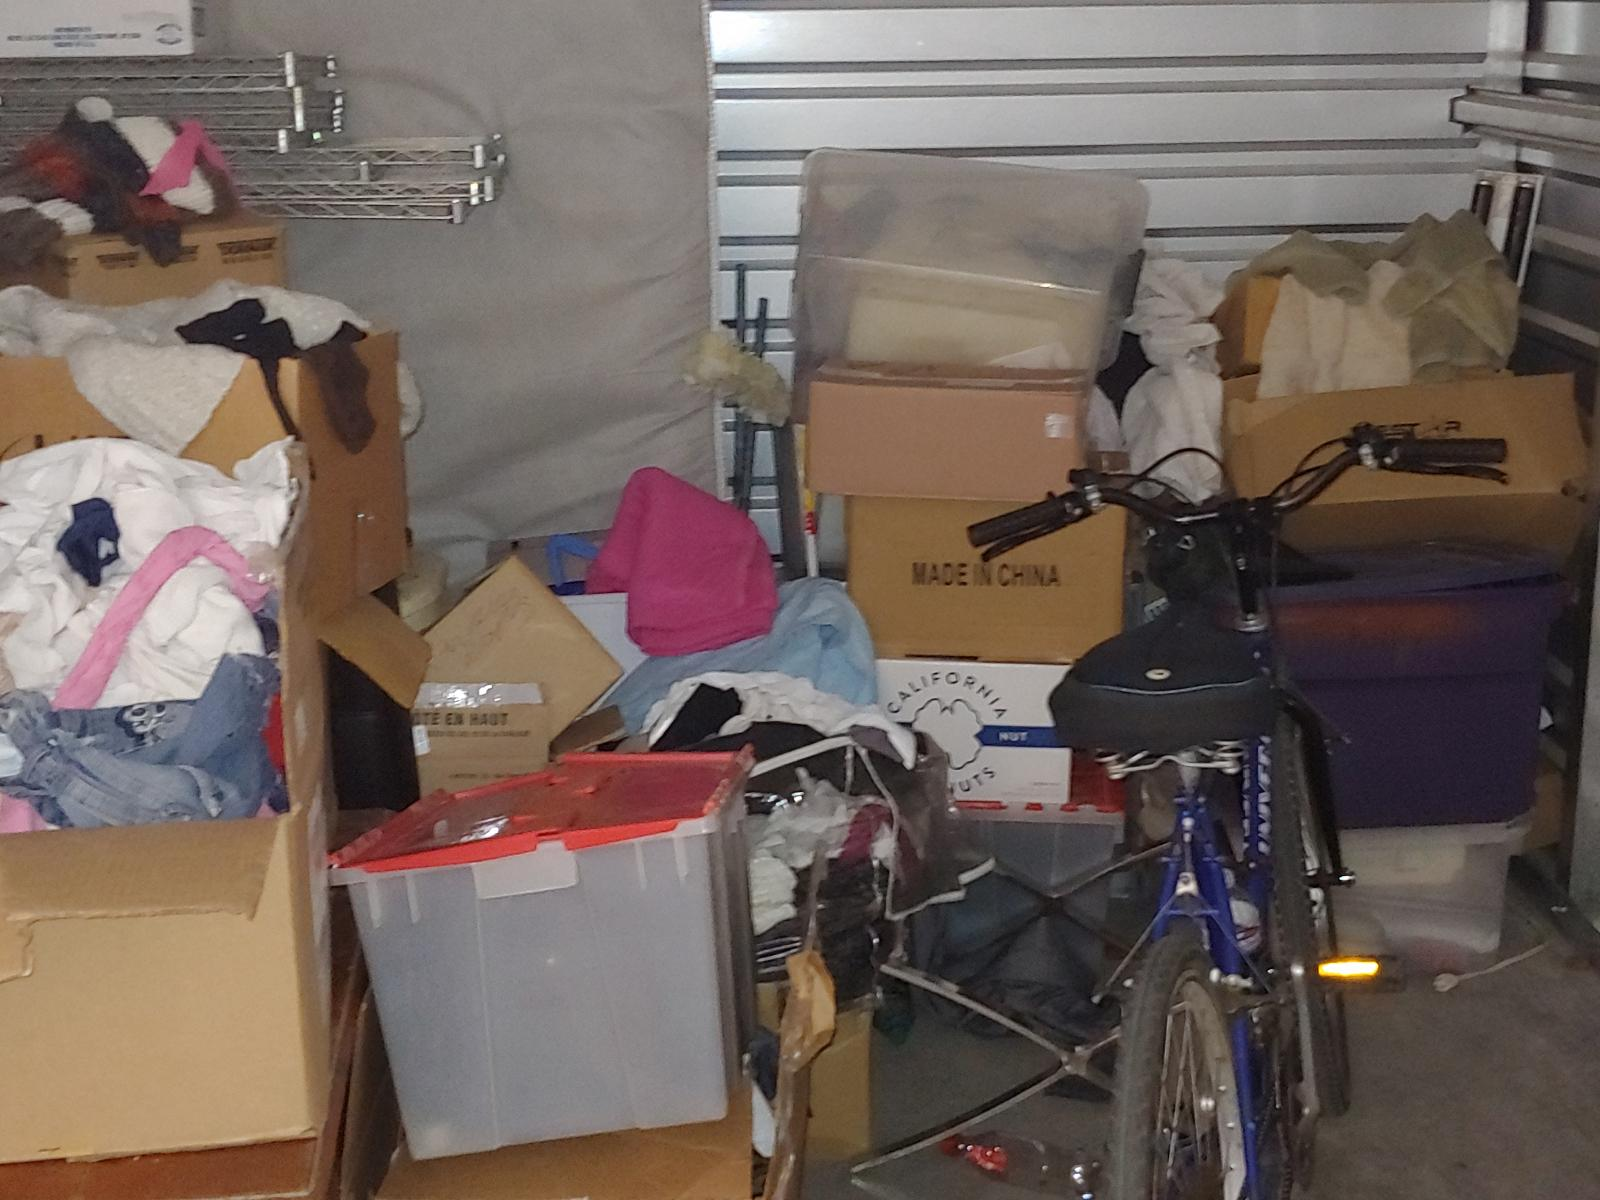 Peoria Storage Storage Unit Auction 53881 Peoria Az Selfstorageauction